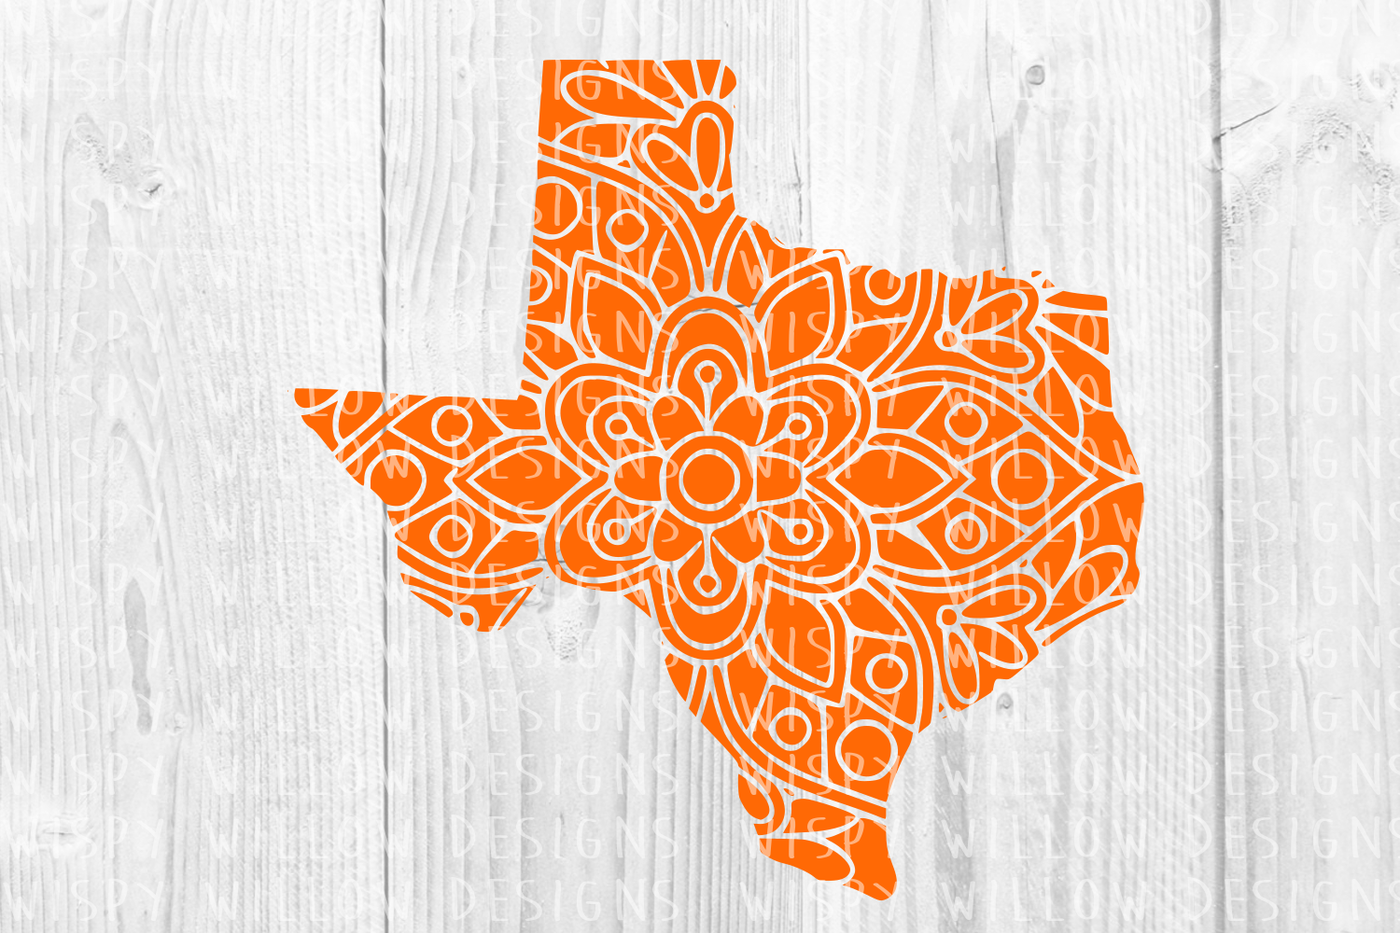 Texas Tx State Mandala Svg Dxf Eps Png Jpg Pdf By Wispy Willow